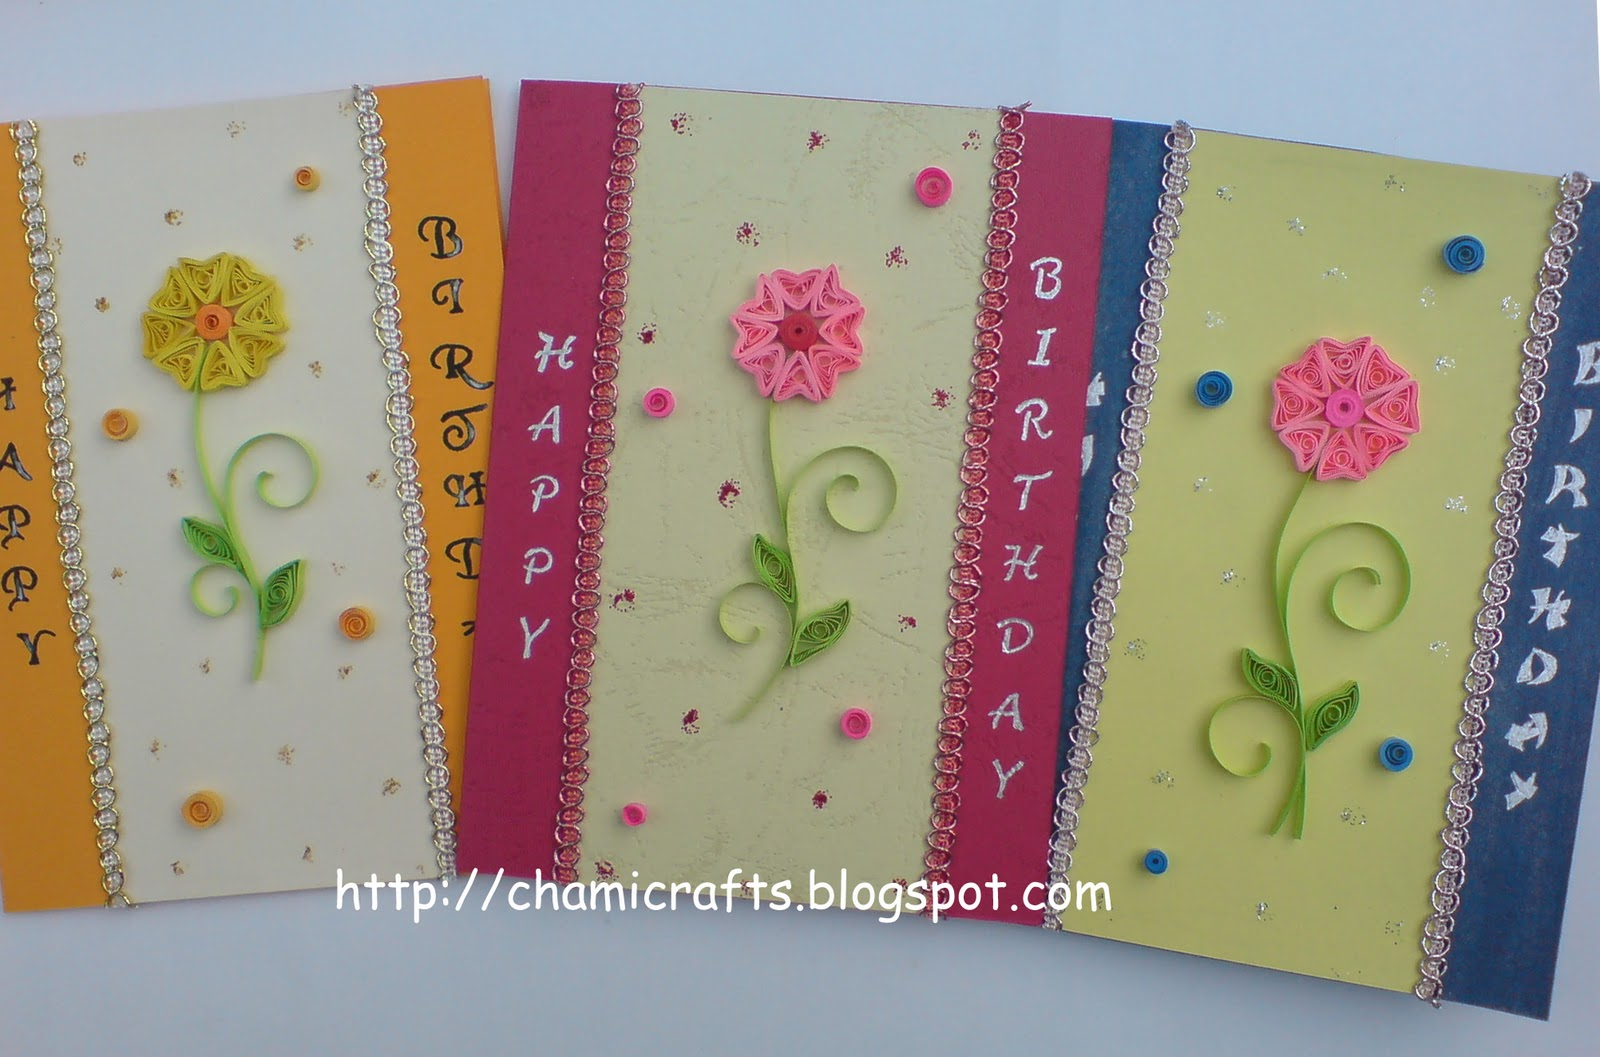 Chami Crafts - Handmade Greeting Cards: one design with ...